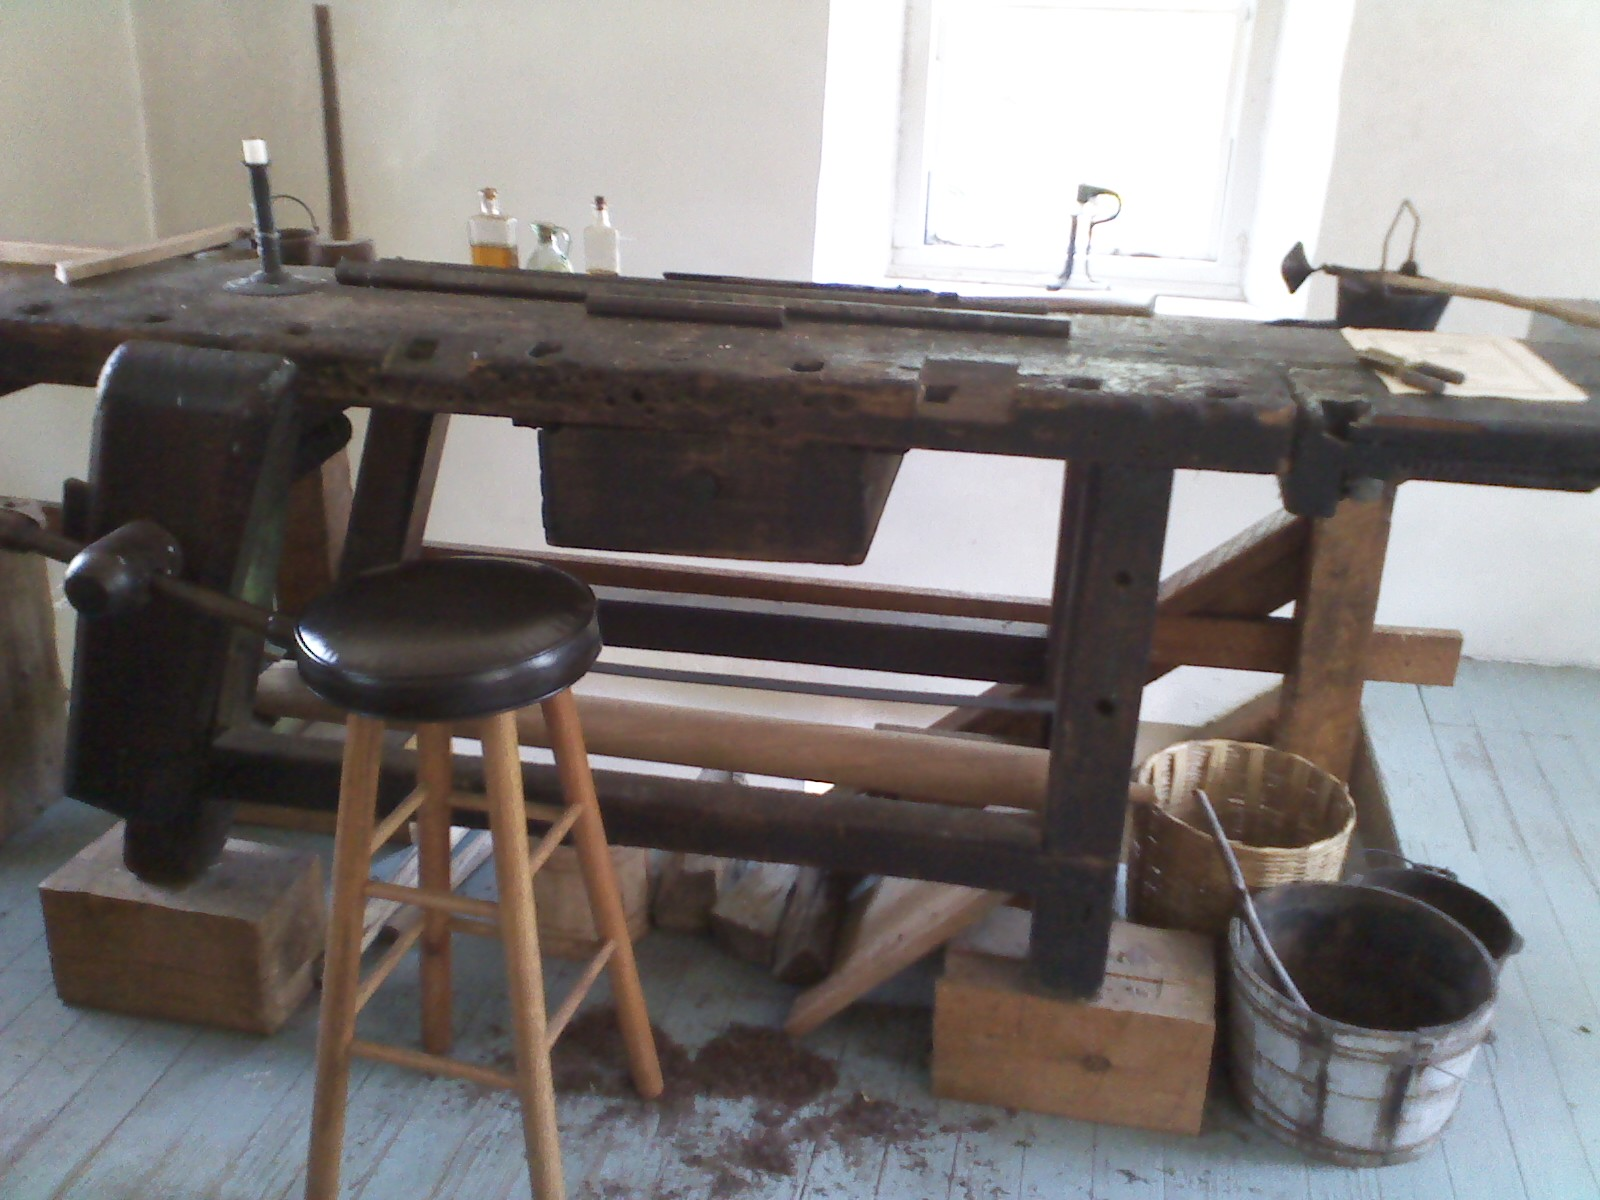 Awesome DIY Antique Woodworking Bench Plans Free